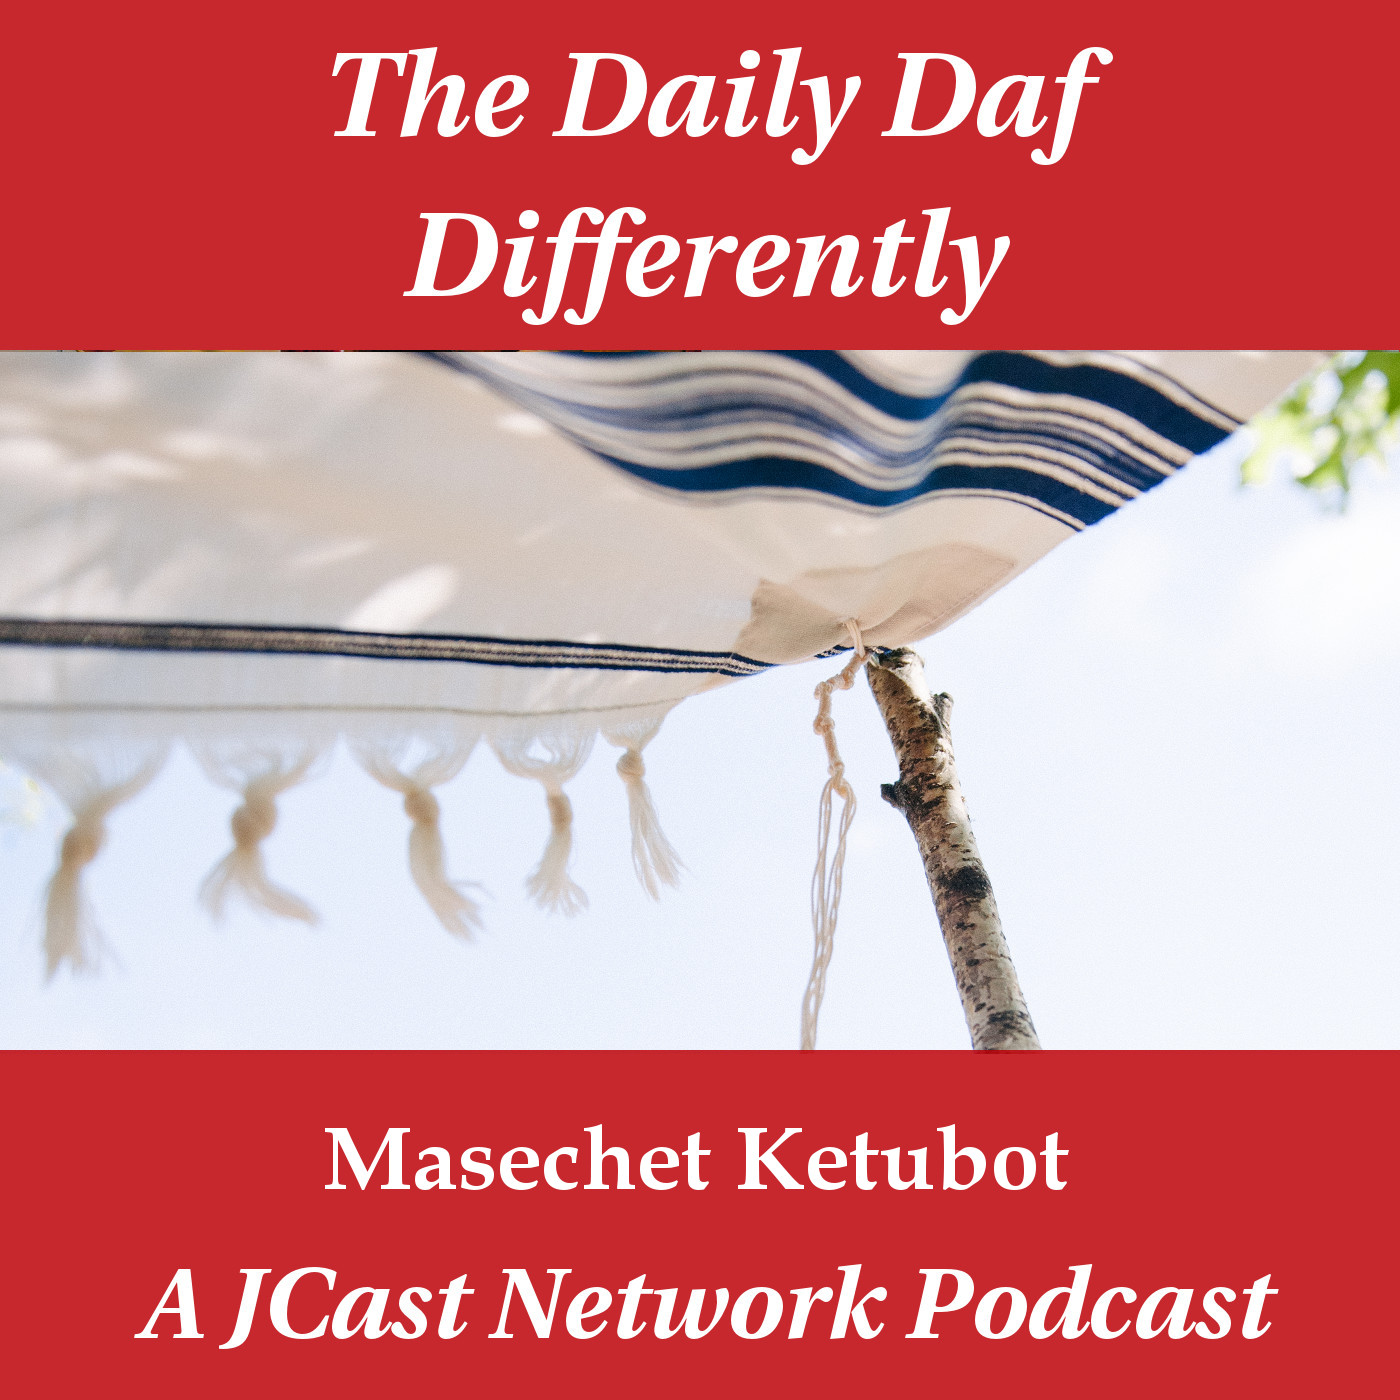 Daily Daf Differently: Masechet Ketubot